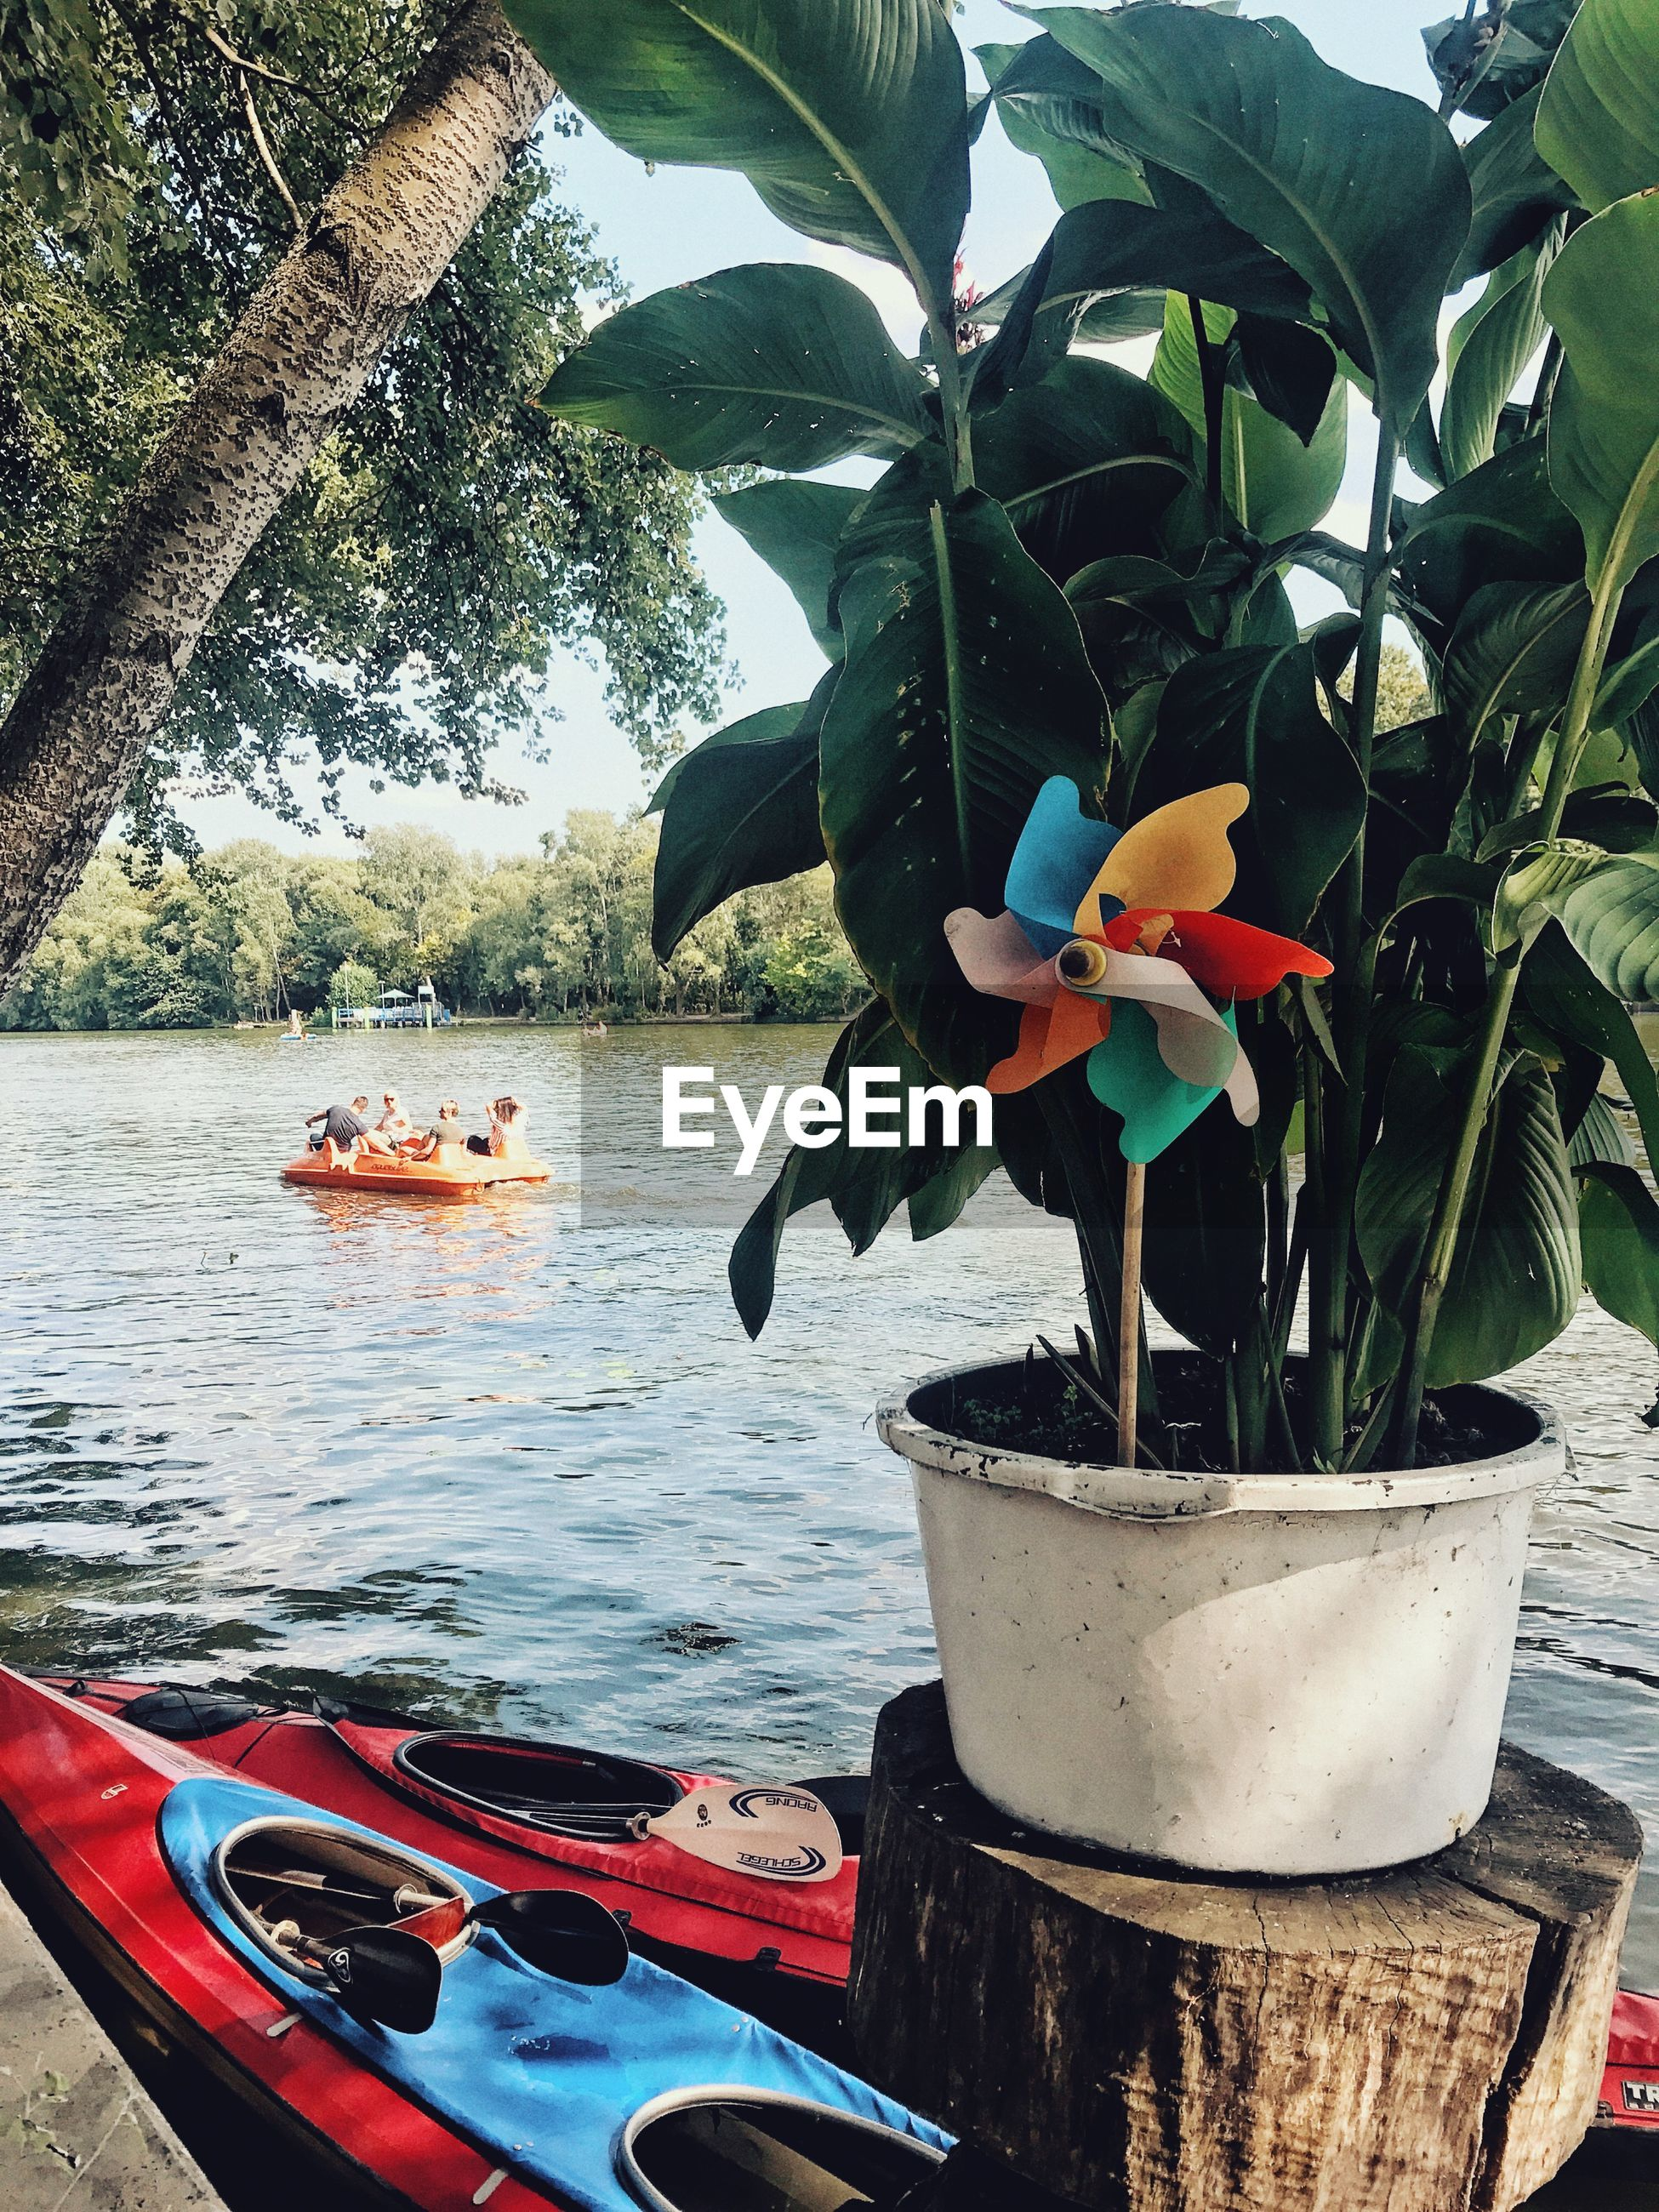 CLOSE-UP OF POTTED PLANTS BY BOAT AGAINST TREES